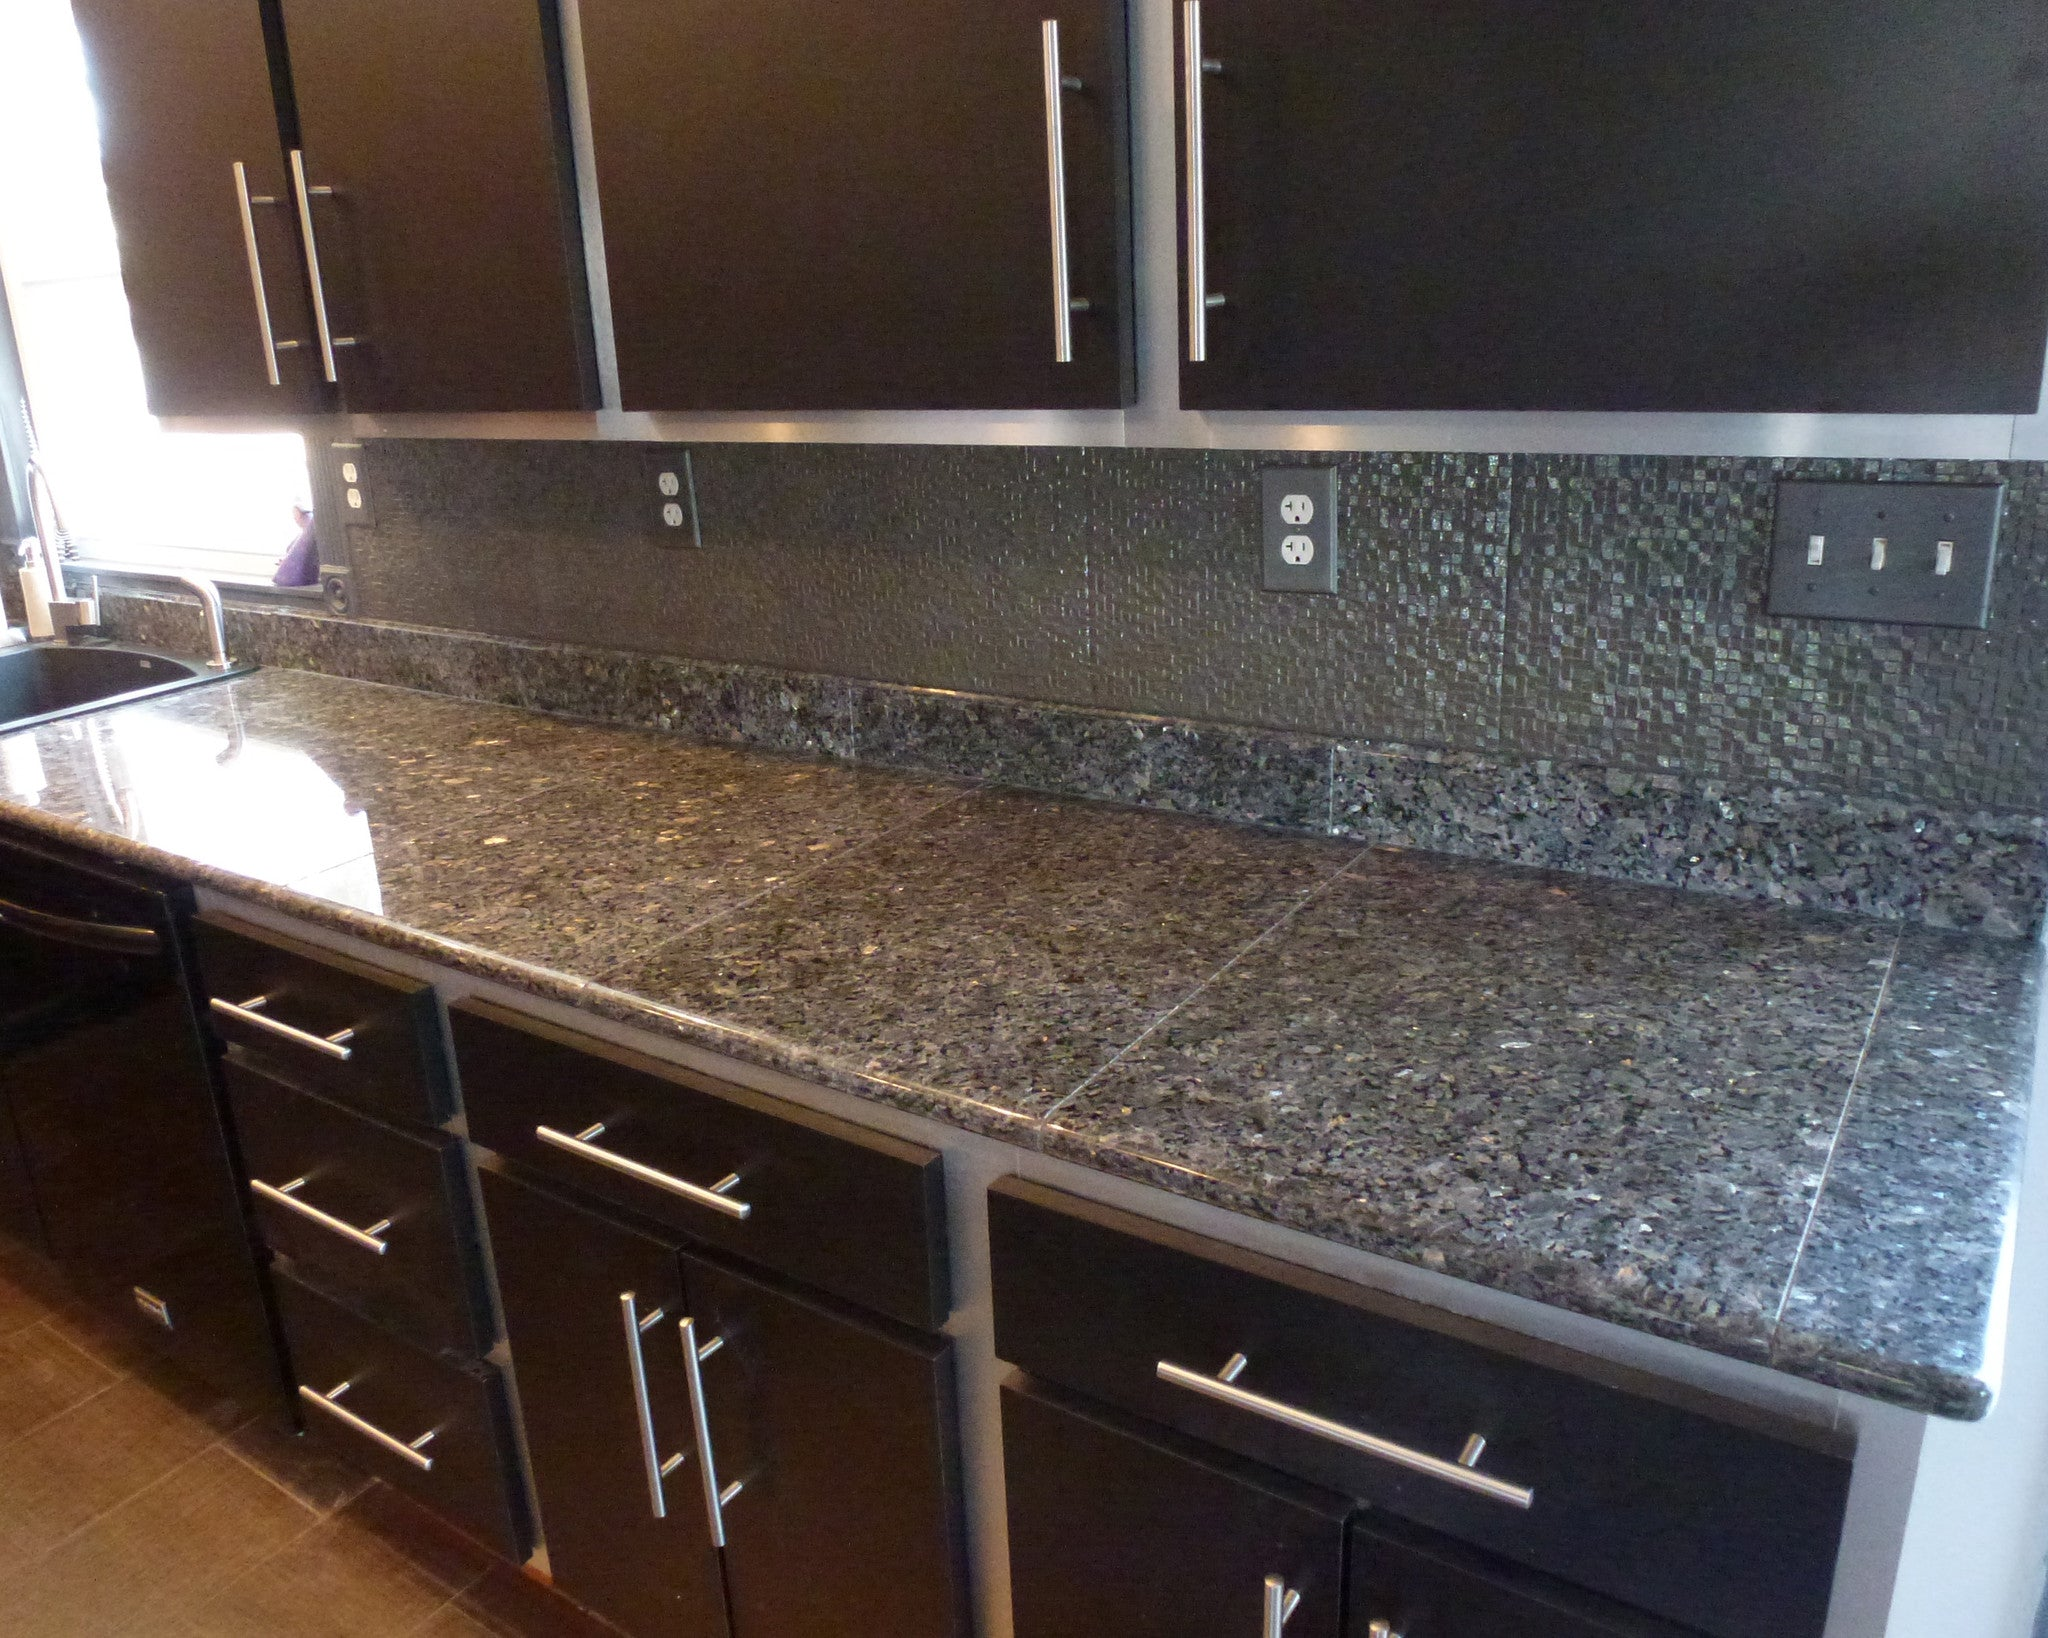 Blue pearl prefab granite countertop cearance item